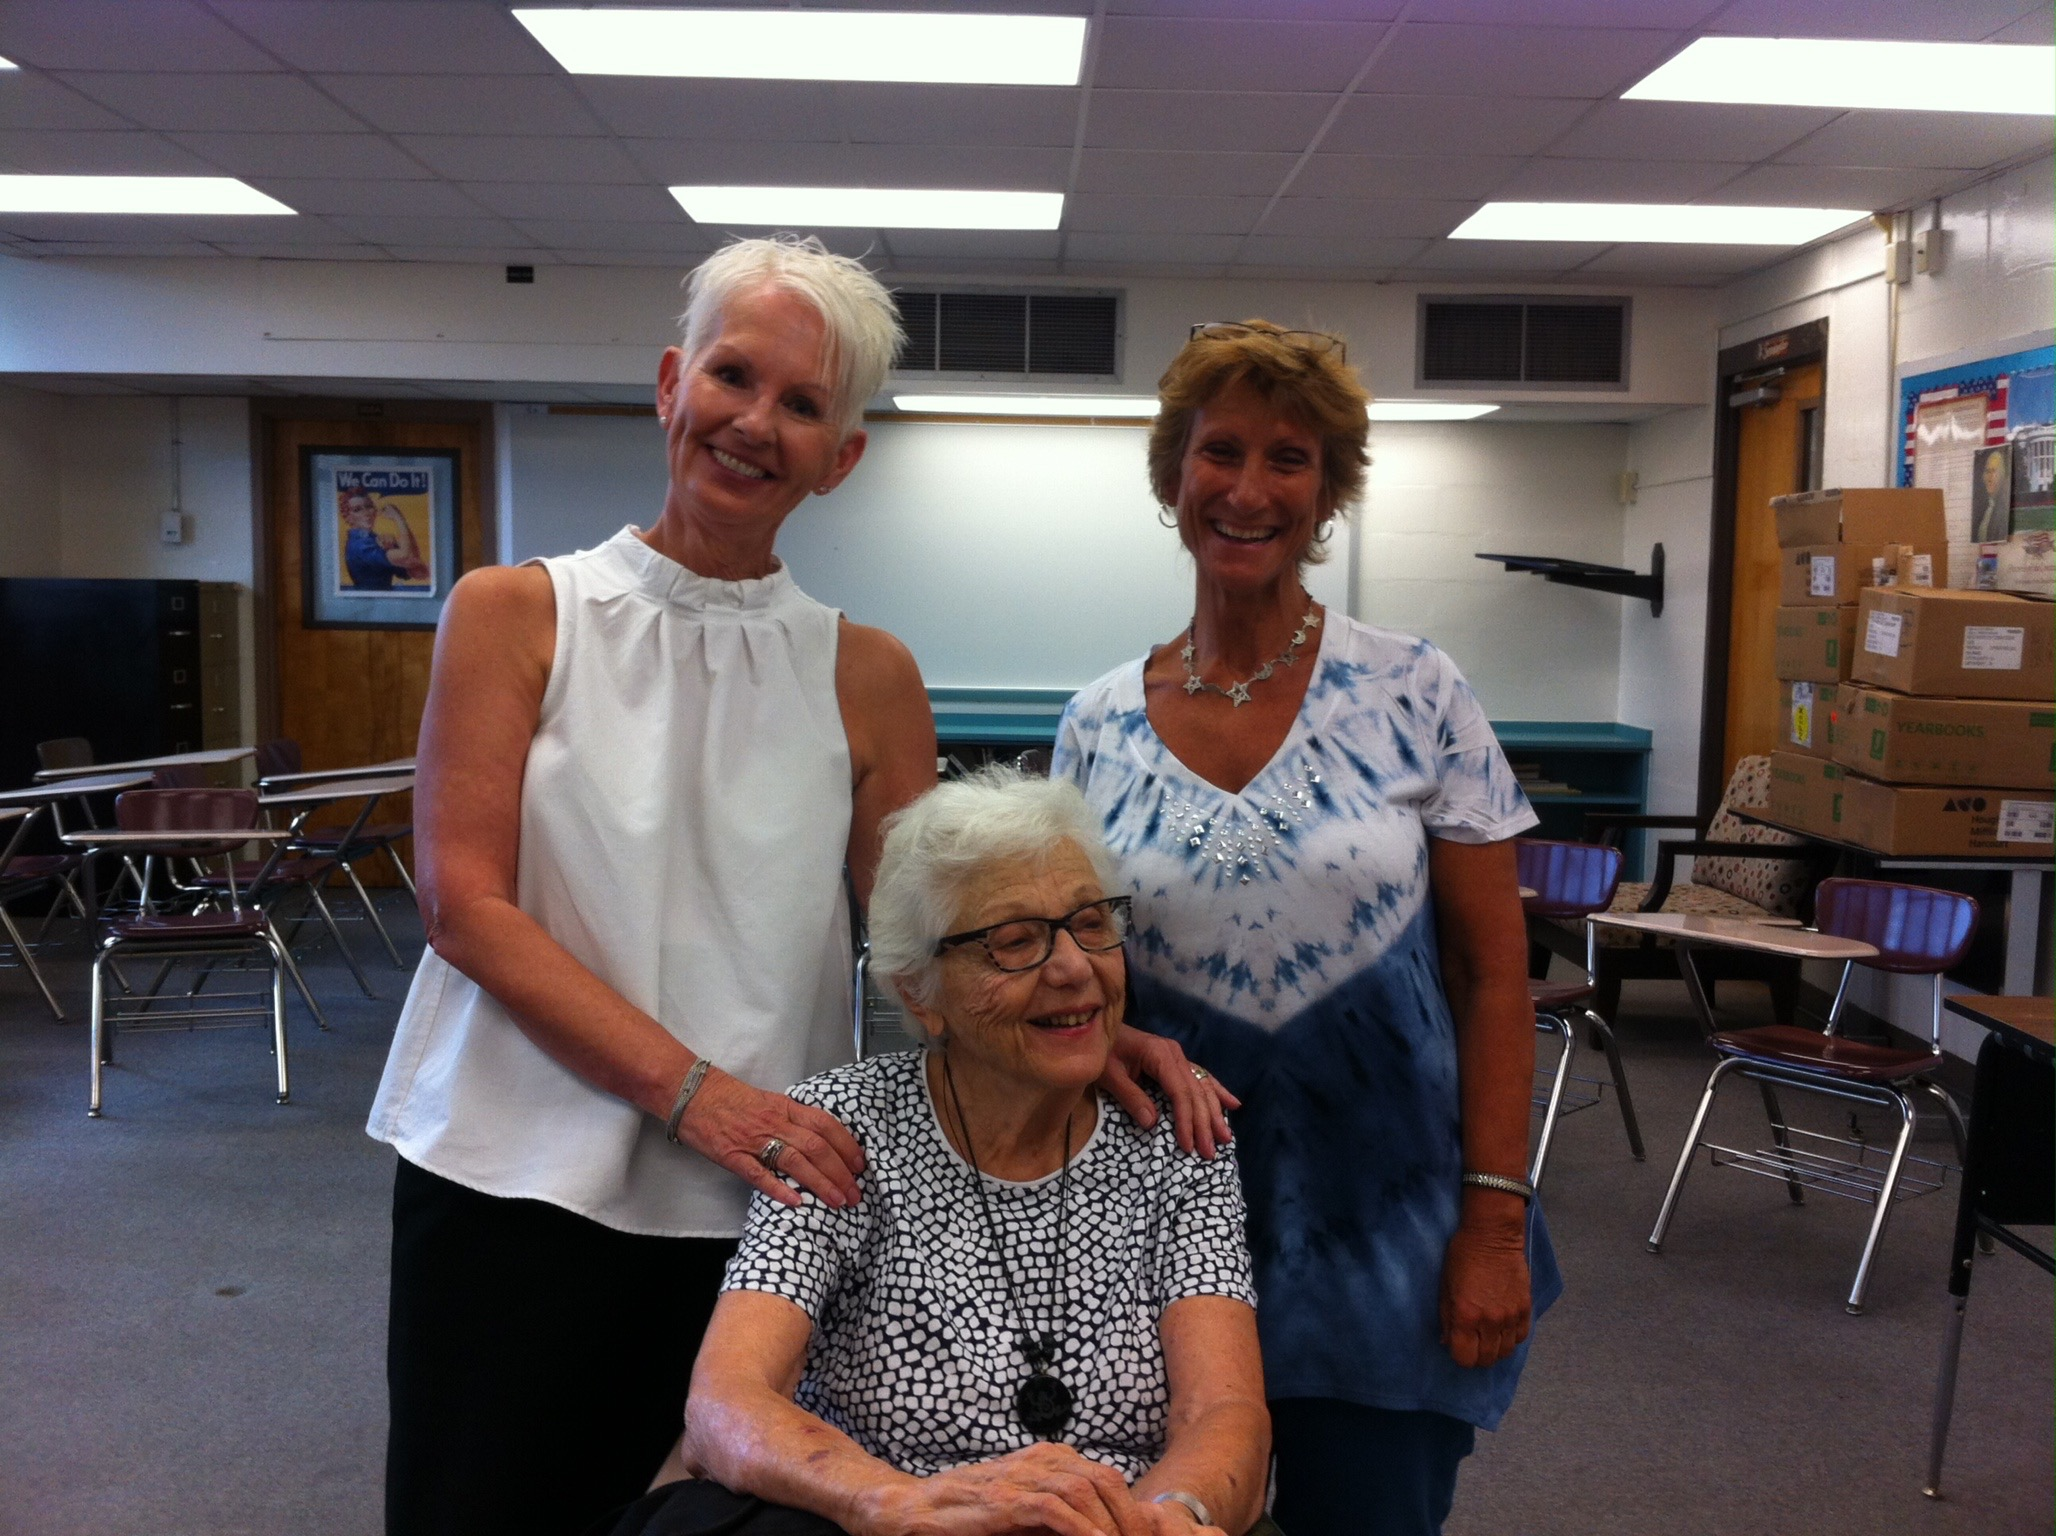 St. Johns County Volunteer reading pals Erika Bauserman, Molly Grossholz and Barbara Brenner pose after presenting a reading work shop during the Summer Reading Conference hosted by the ELC of North Florida and the RSVP program of St. Johns County.